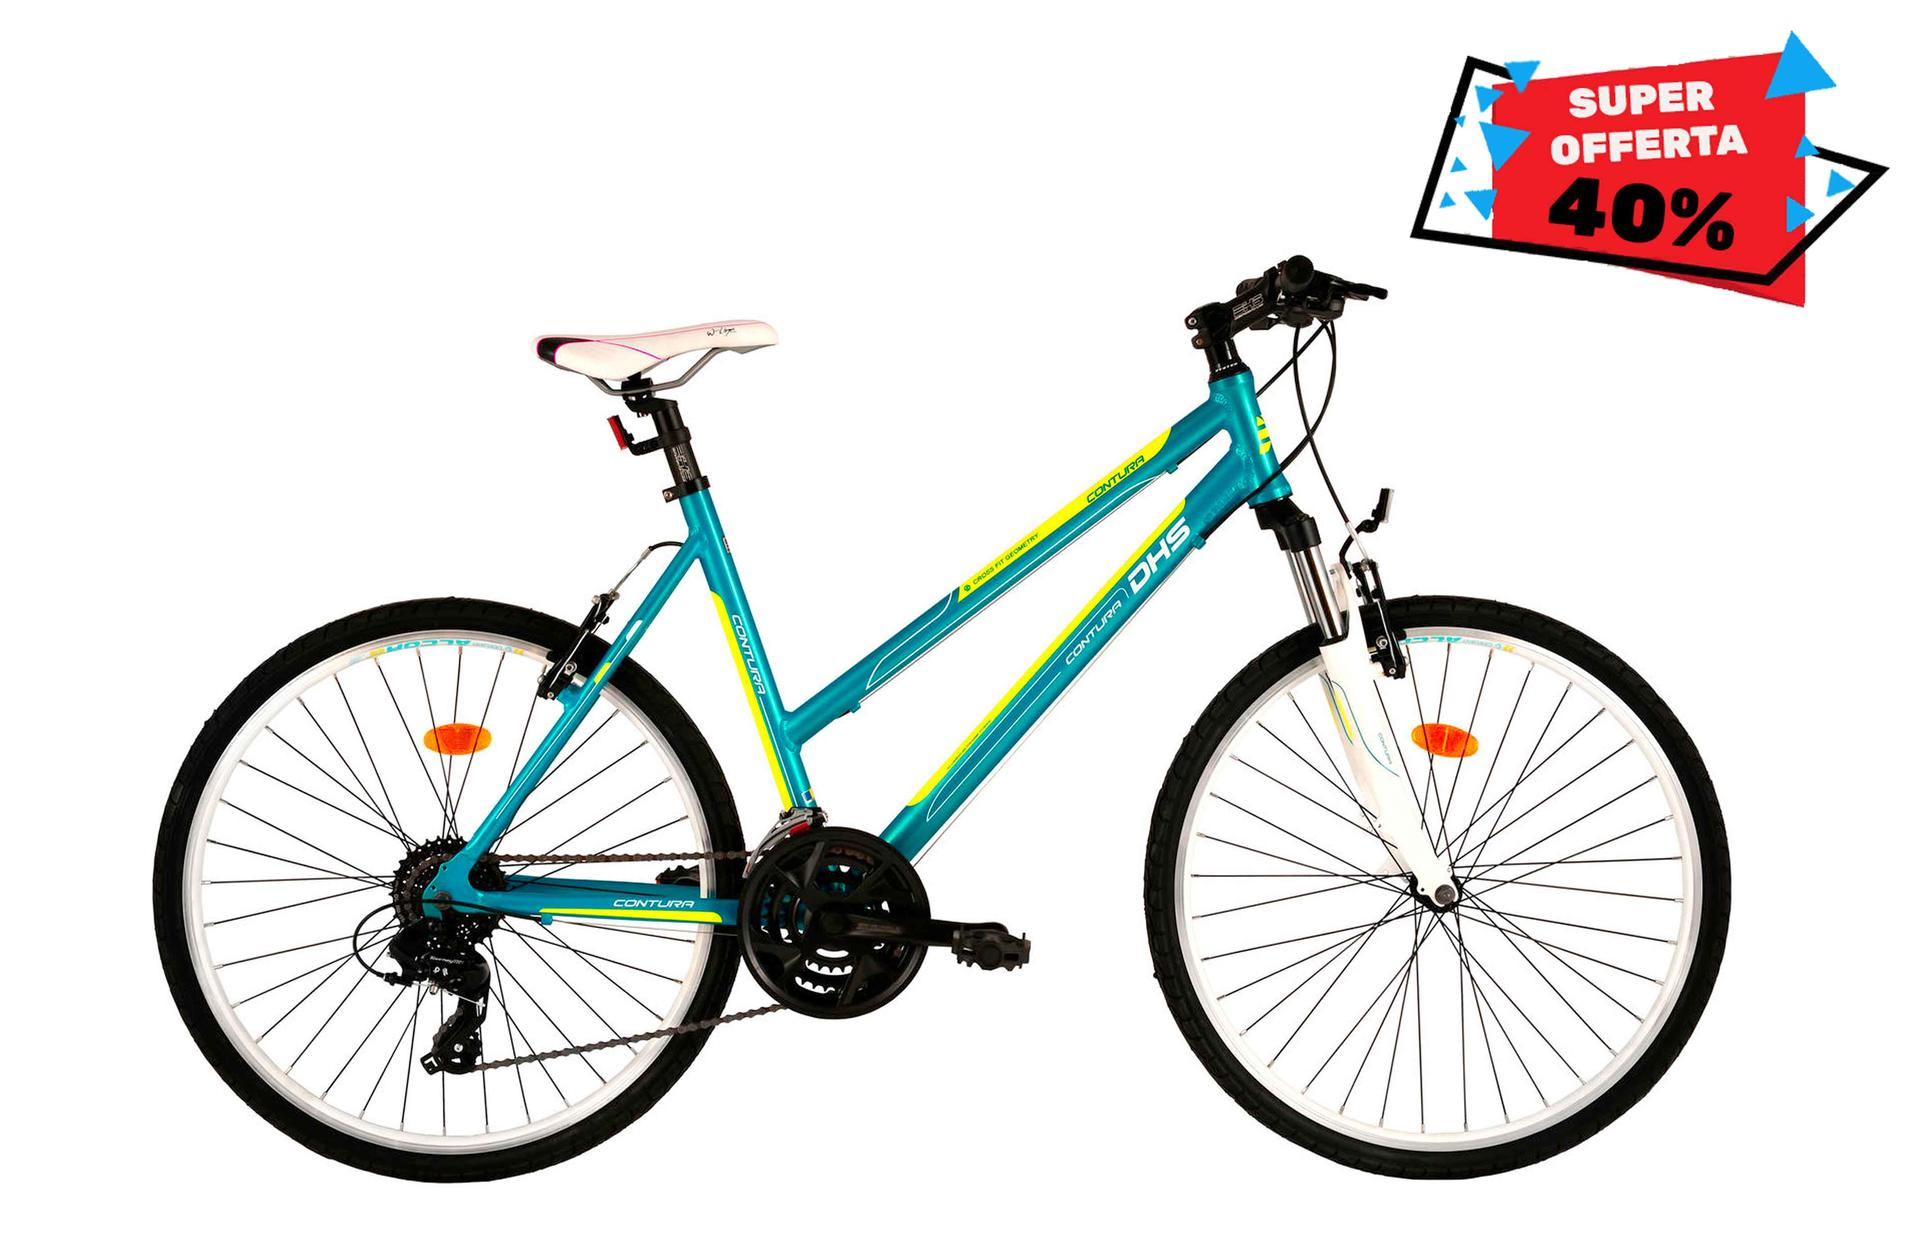 Bicicletta donna da cross DHS 2666 Smarald-Green 495mm